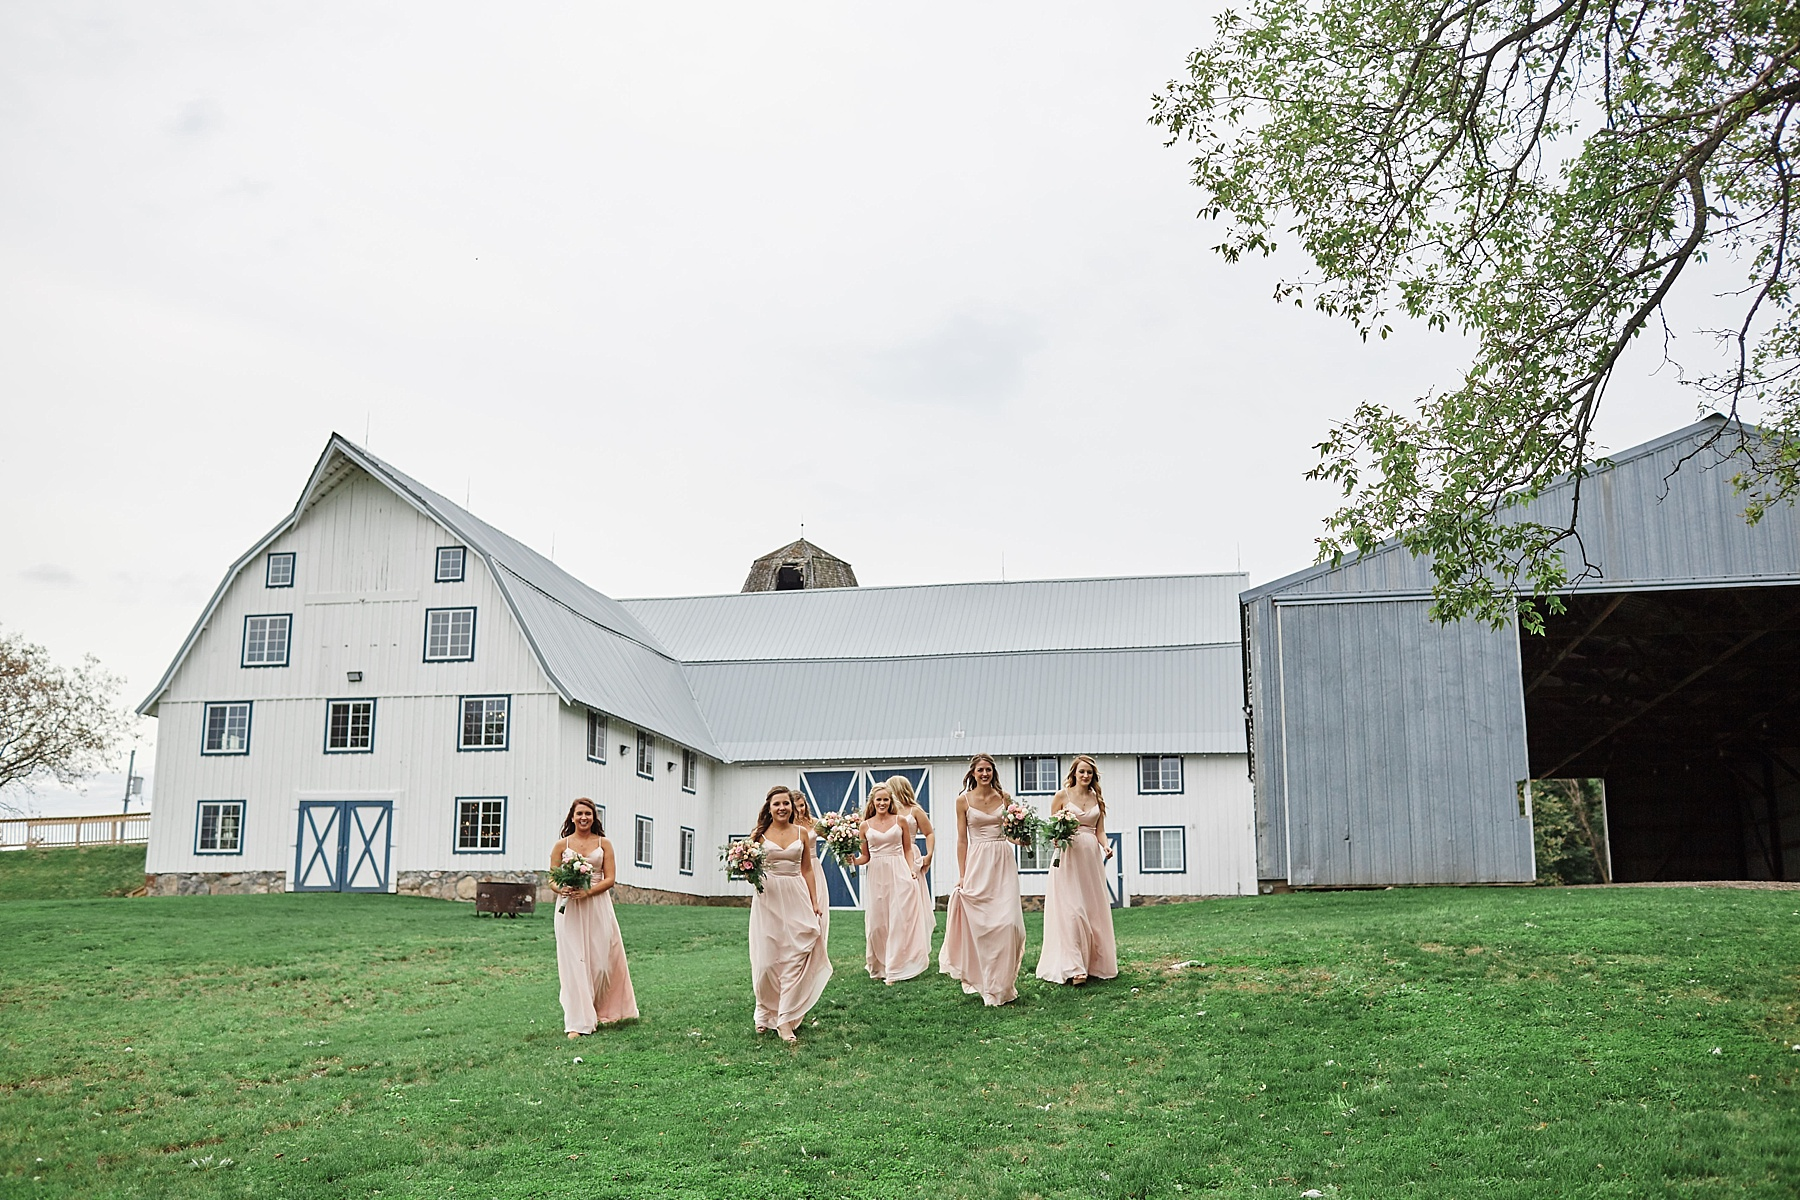 Bloom-Lake-Barn-Wedding-Schafer-Minnesota-Outdoor_0243.jpg